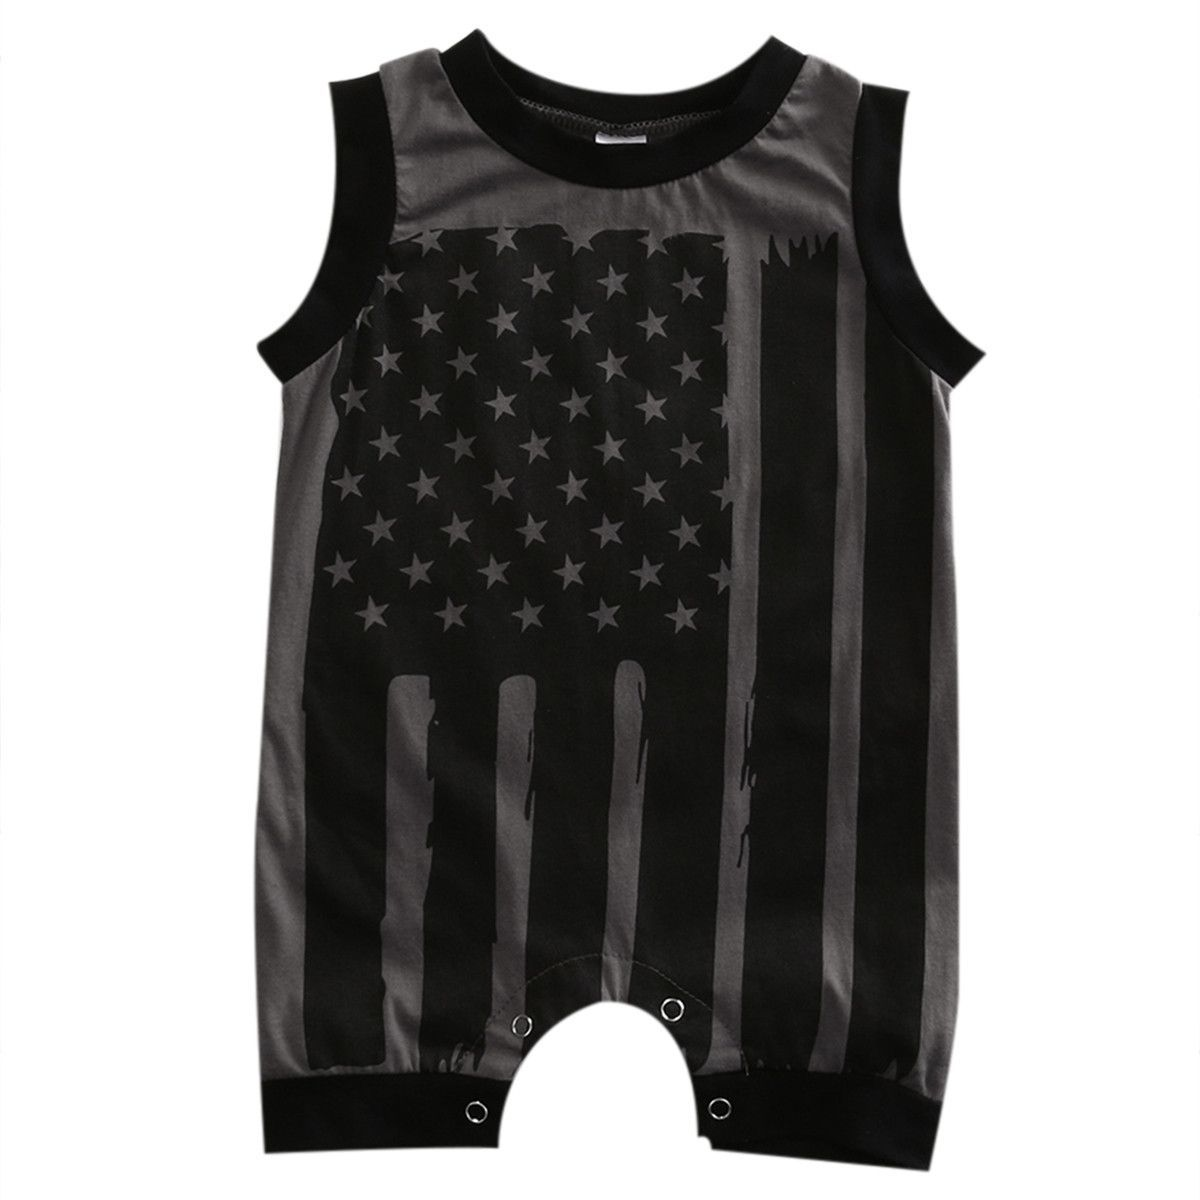 8724632e5ed7 Baby Boy s Sleeveless Stars   Stripes Romper Outfit